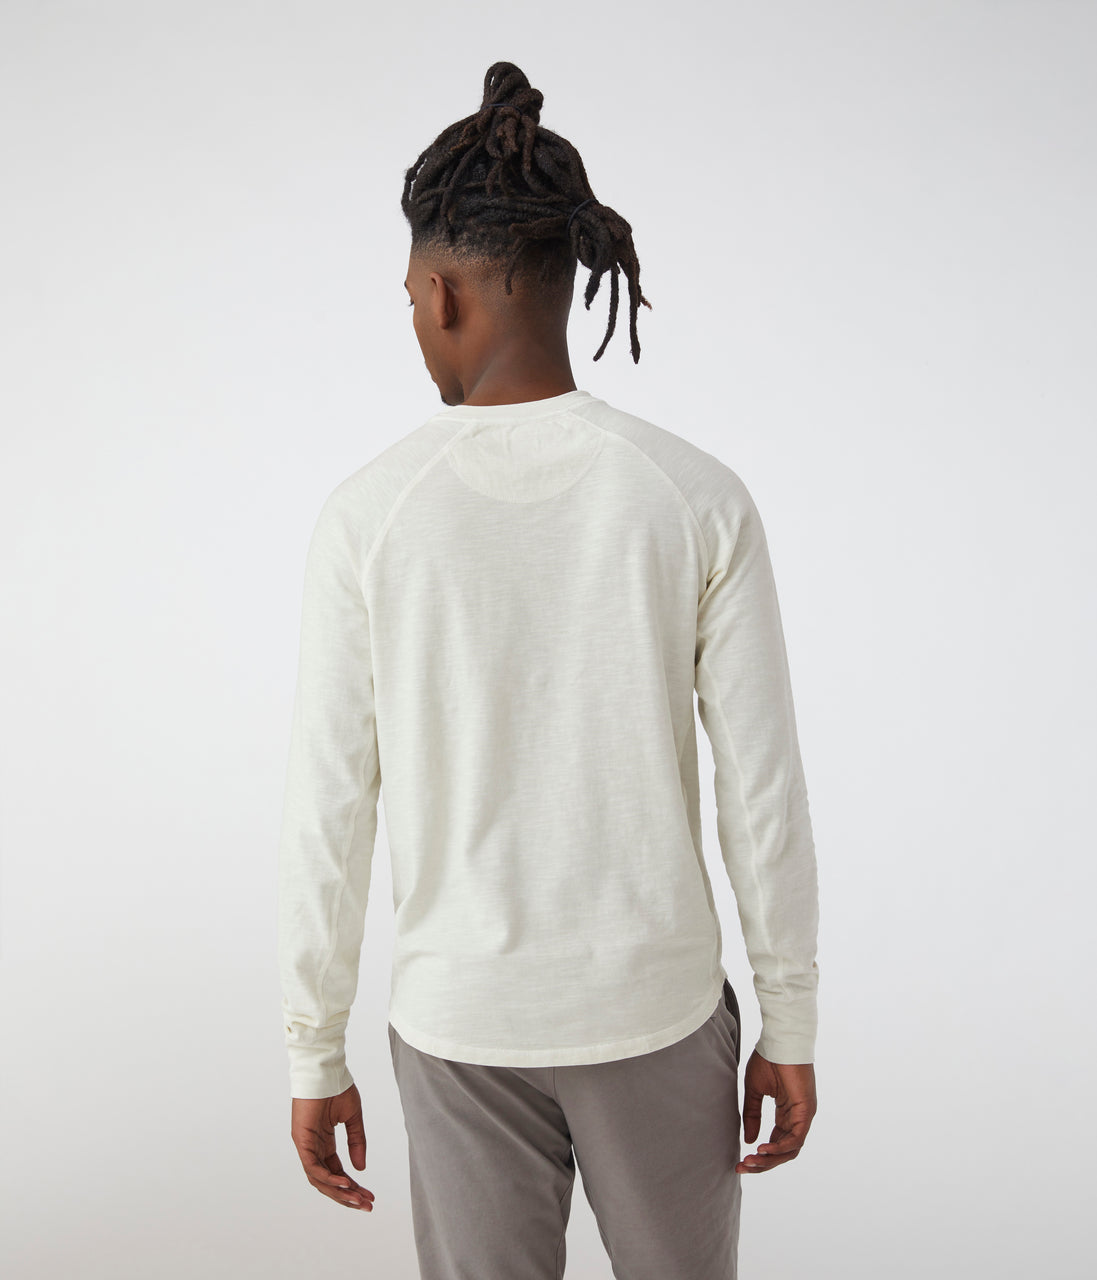 Legend Henley in Soft Slub Jersey - Natural - Good Man Brand - Legend Henley in Soft Slub Jersey - Natural